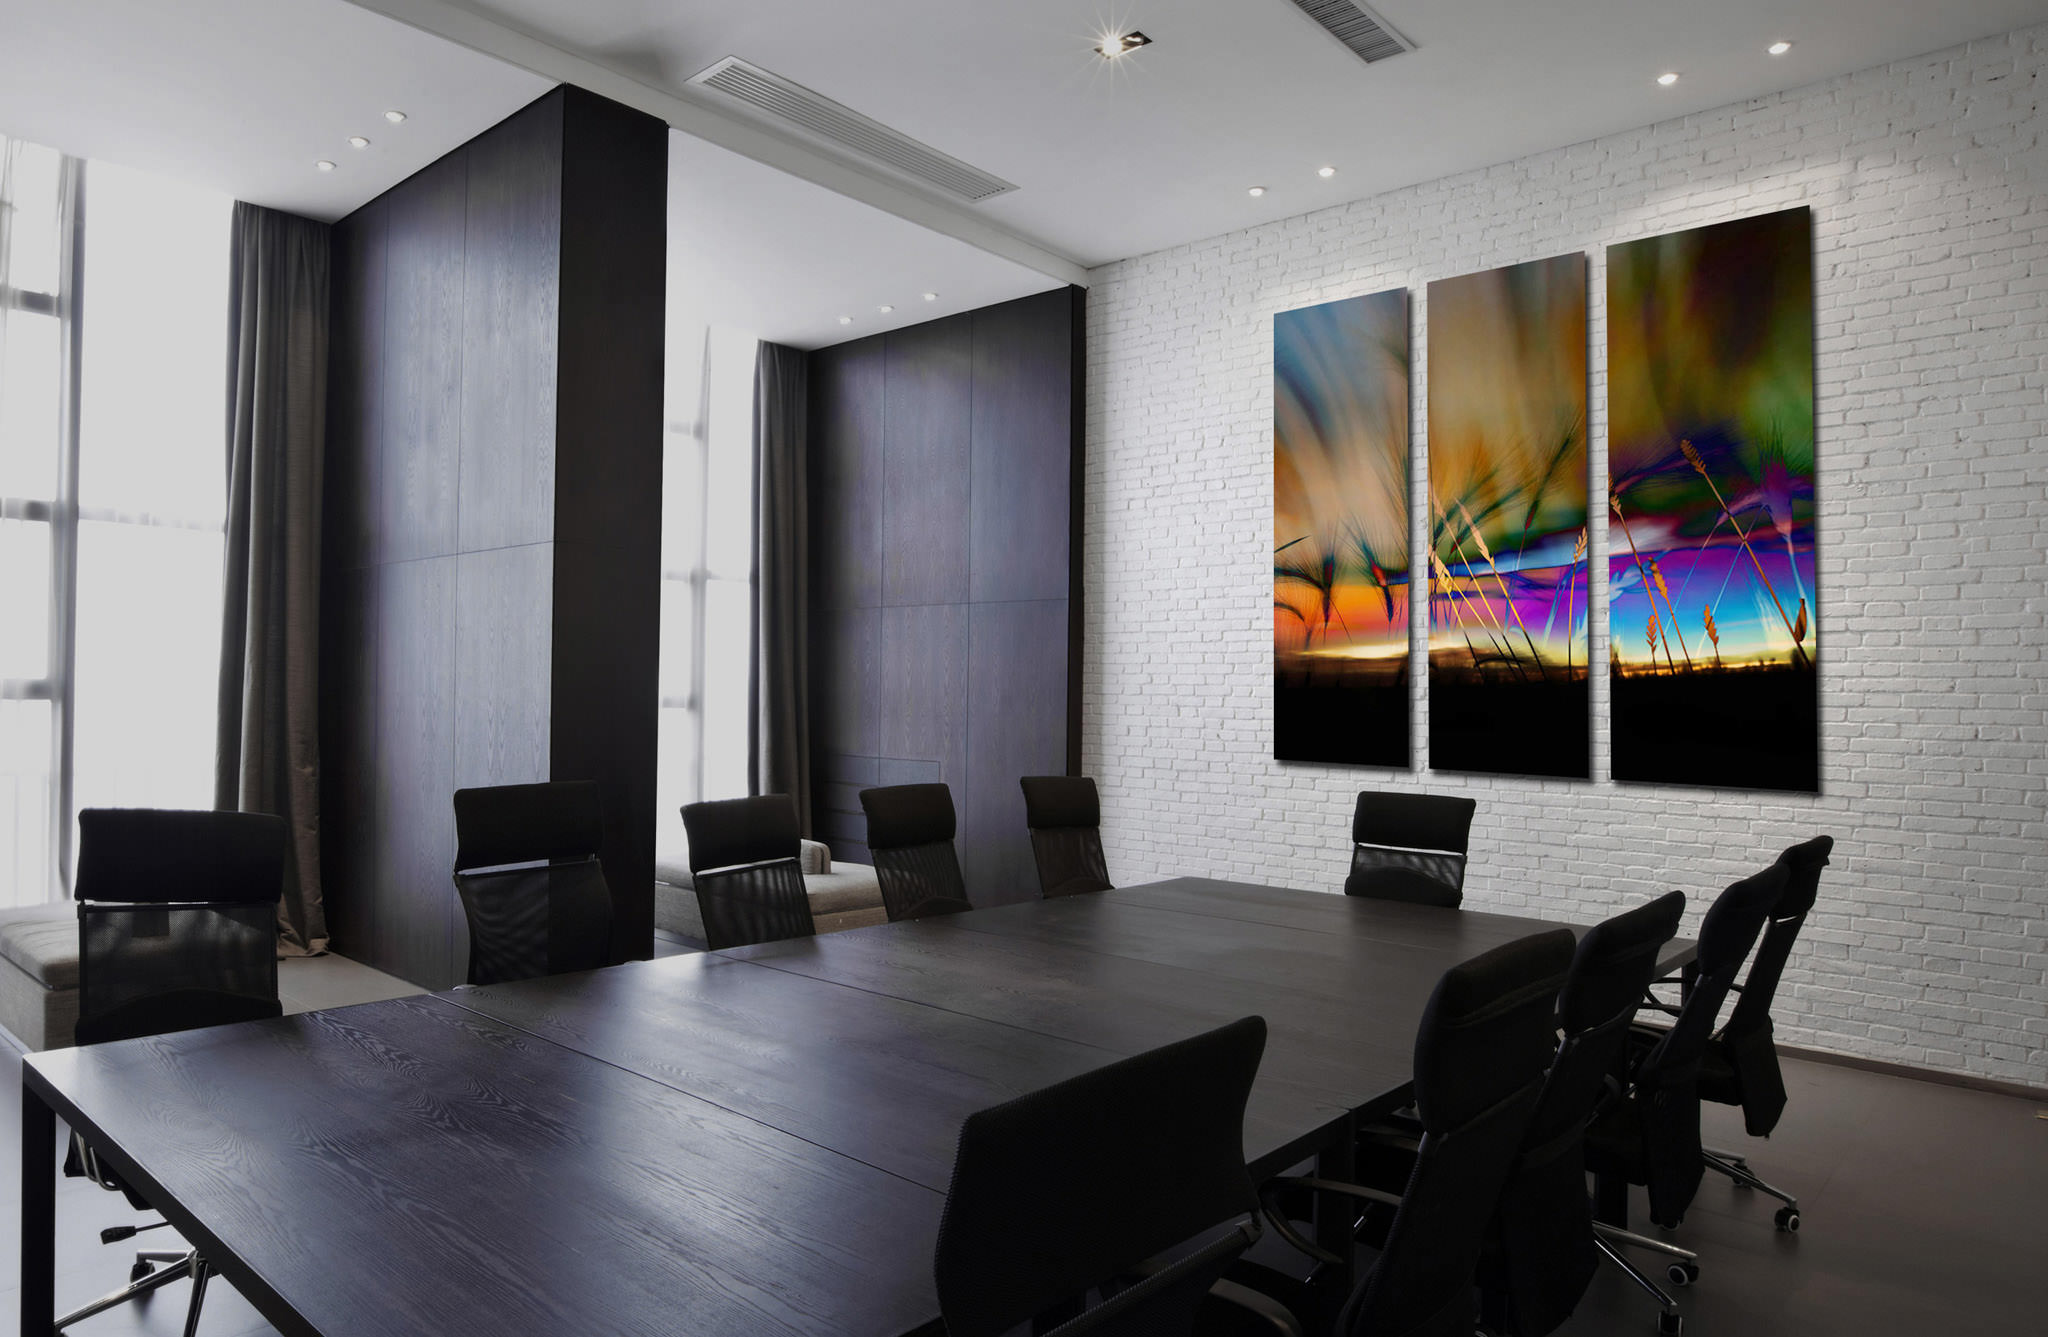 Genial 3 Panel Triptych Office Art